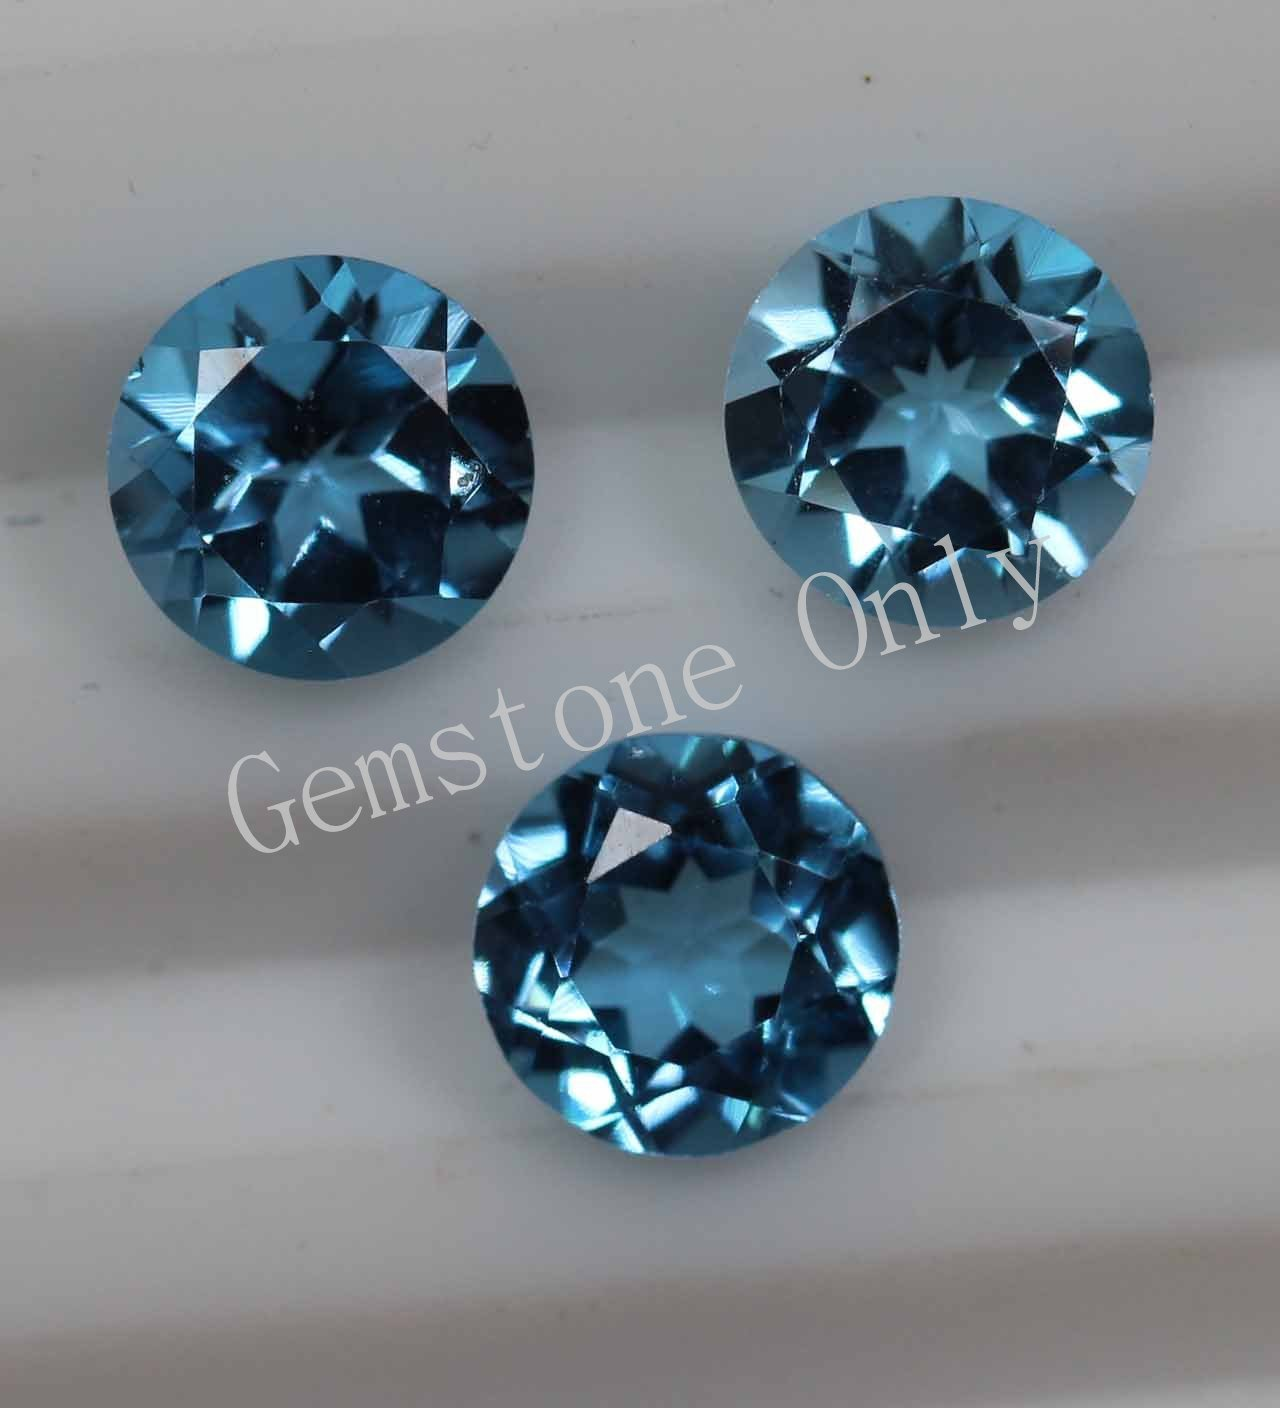 8mm Natural Swiss Blue topaz Faceted Cut Round 25 Pieces Blue Color Calibrated Size Loose Gemstone